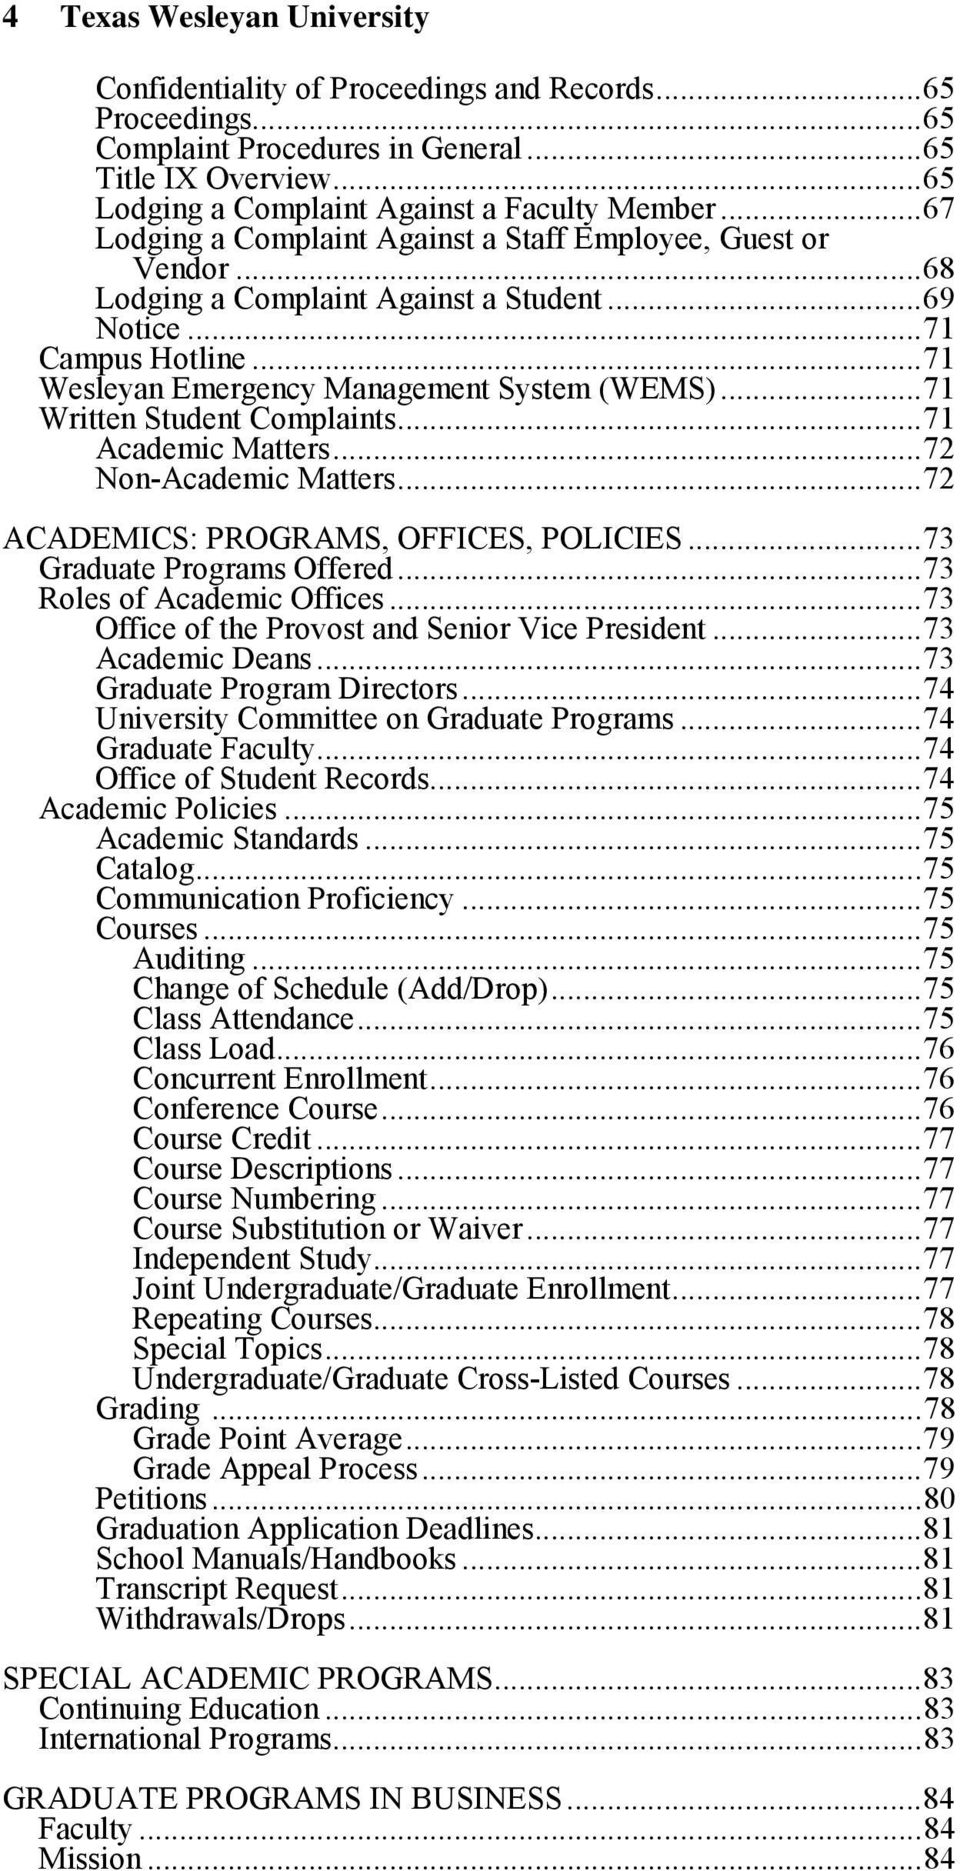 .. 71 Written Student Complaints... 71 Academic Matters... 72 Non-Academic Matters... 72 ACADEMICS: PROGRAMS, OFFICES, POLICIES... 73 Graduate Programs Offered... 73 Roles of Academic Offices.